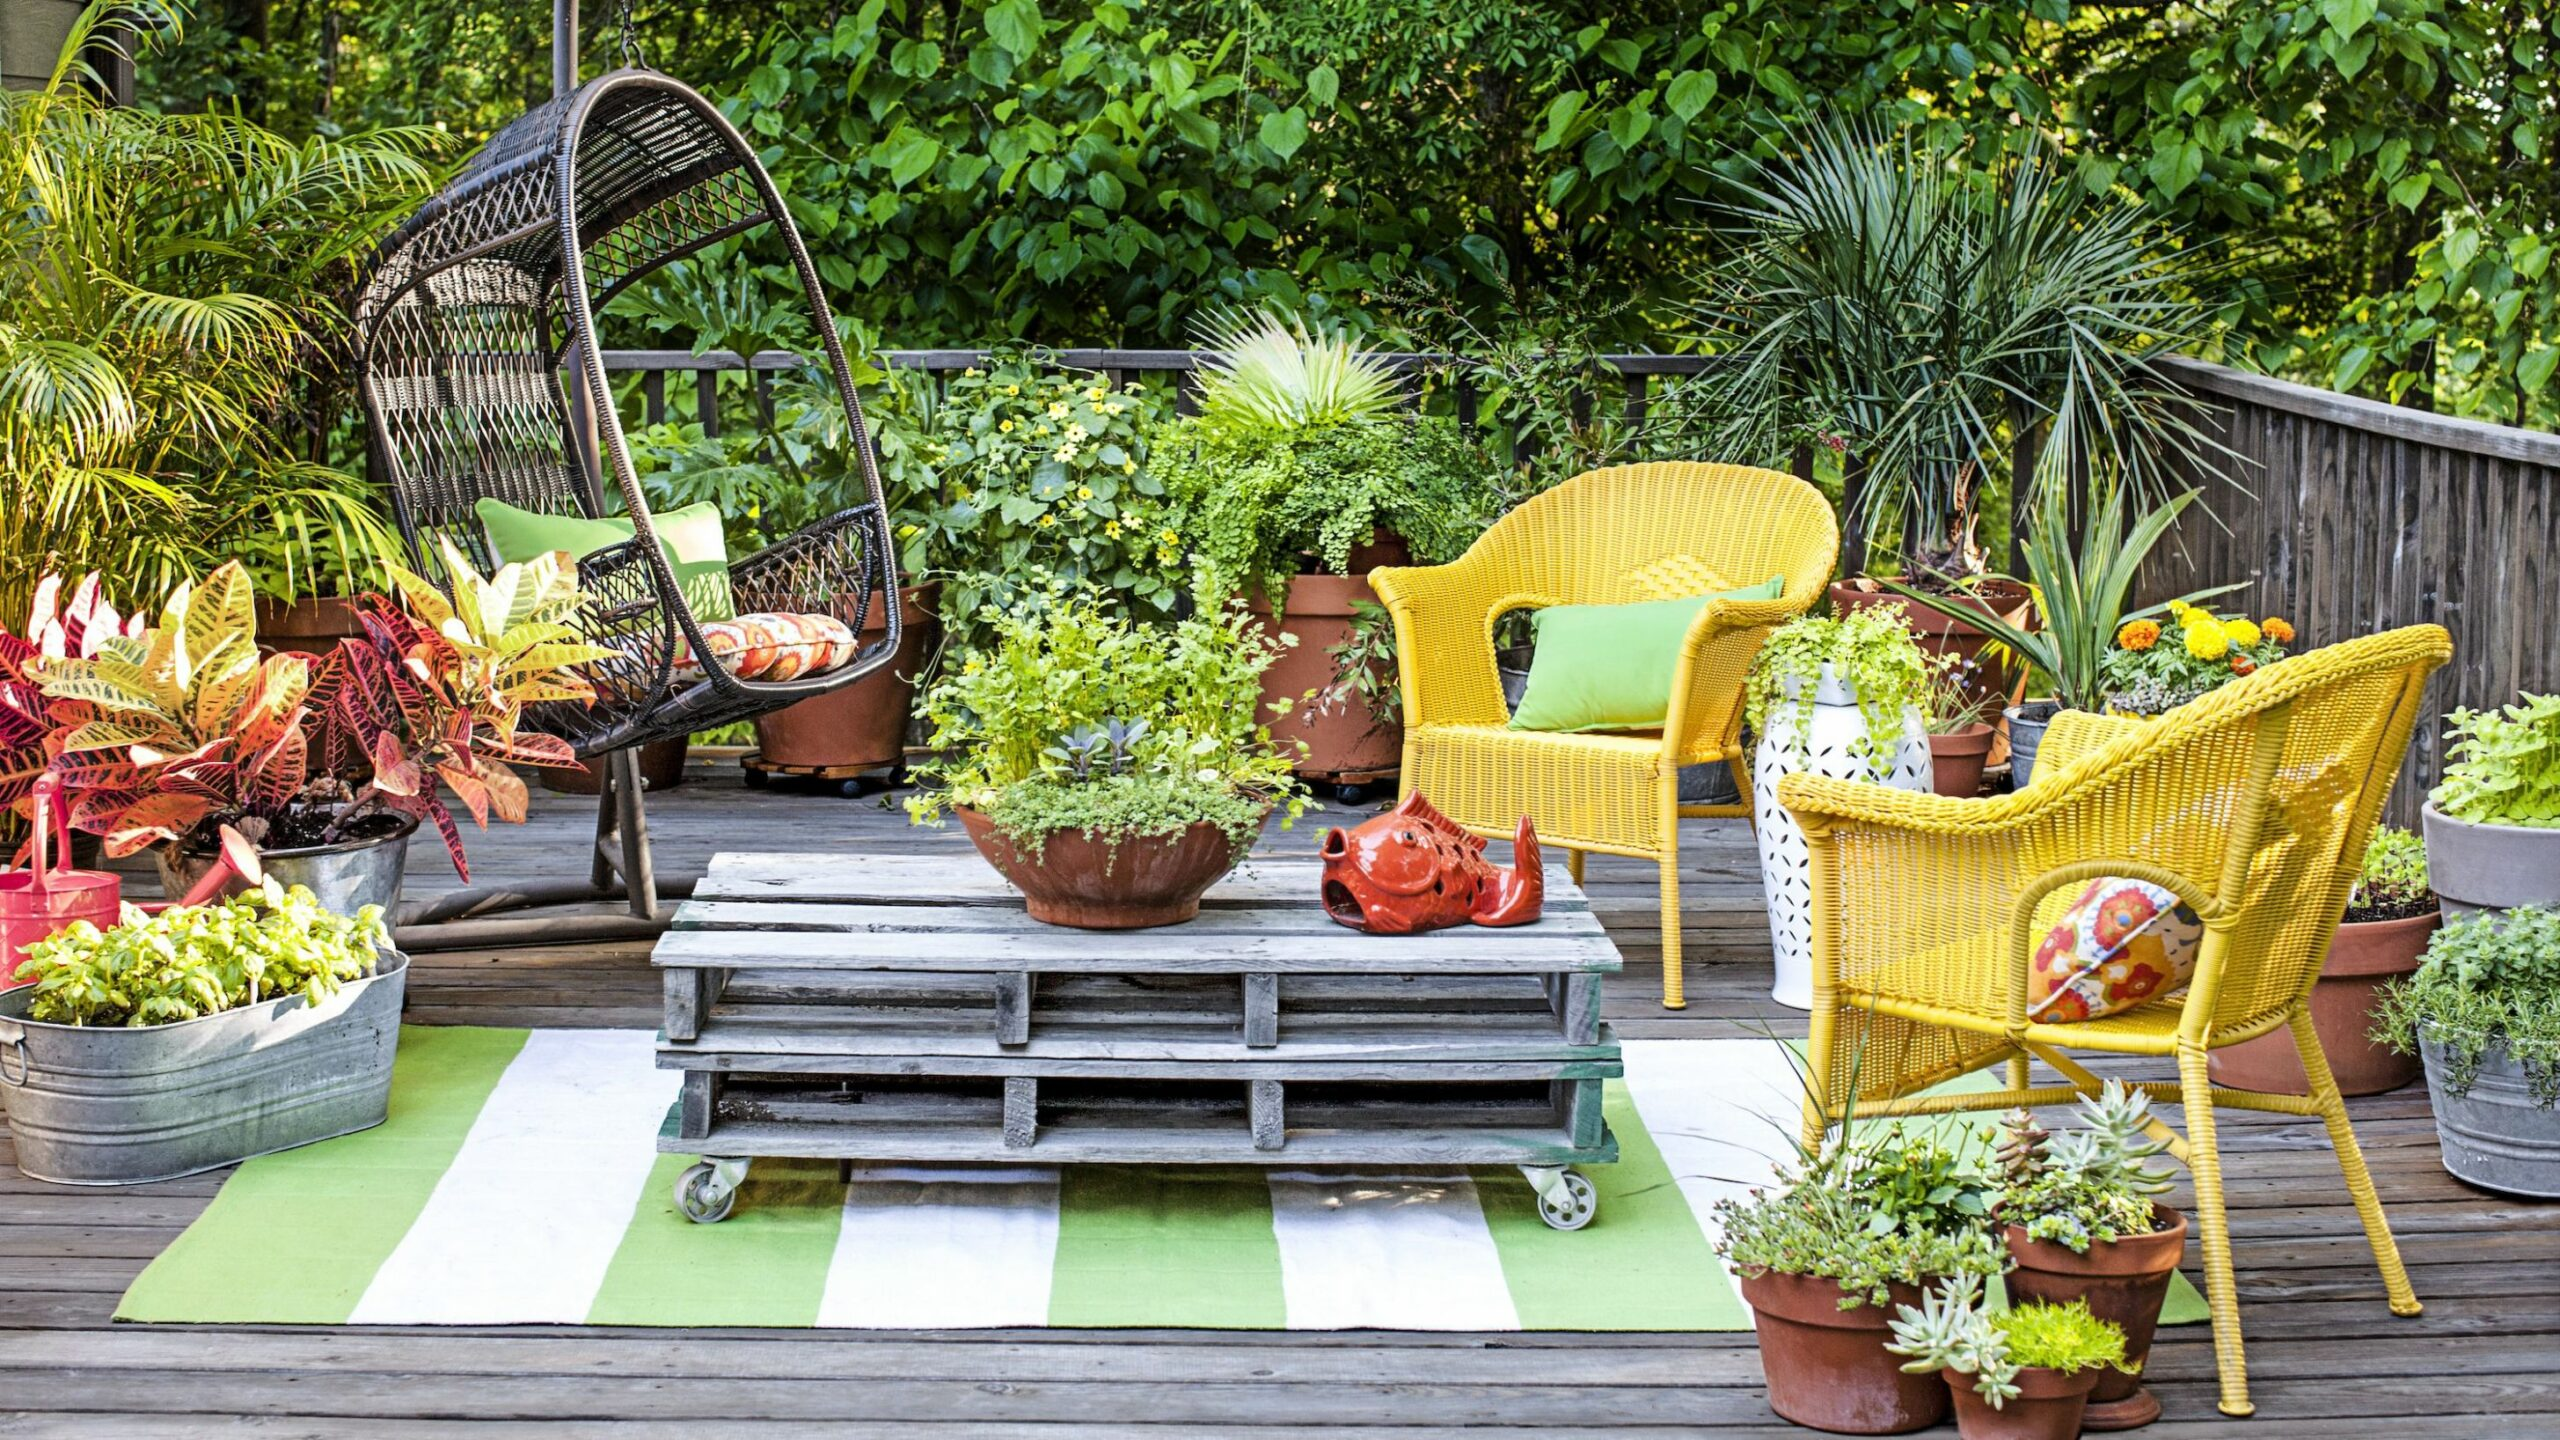 10+ Small Garden Ideas - Small Garden Designs